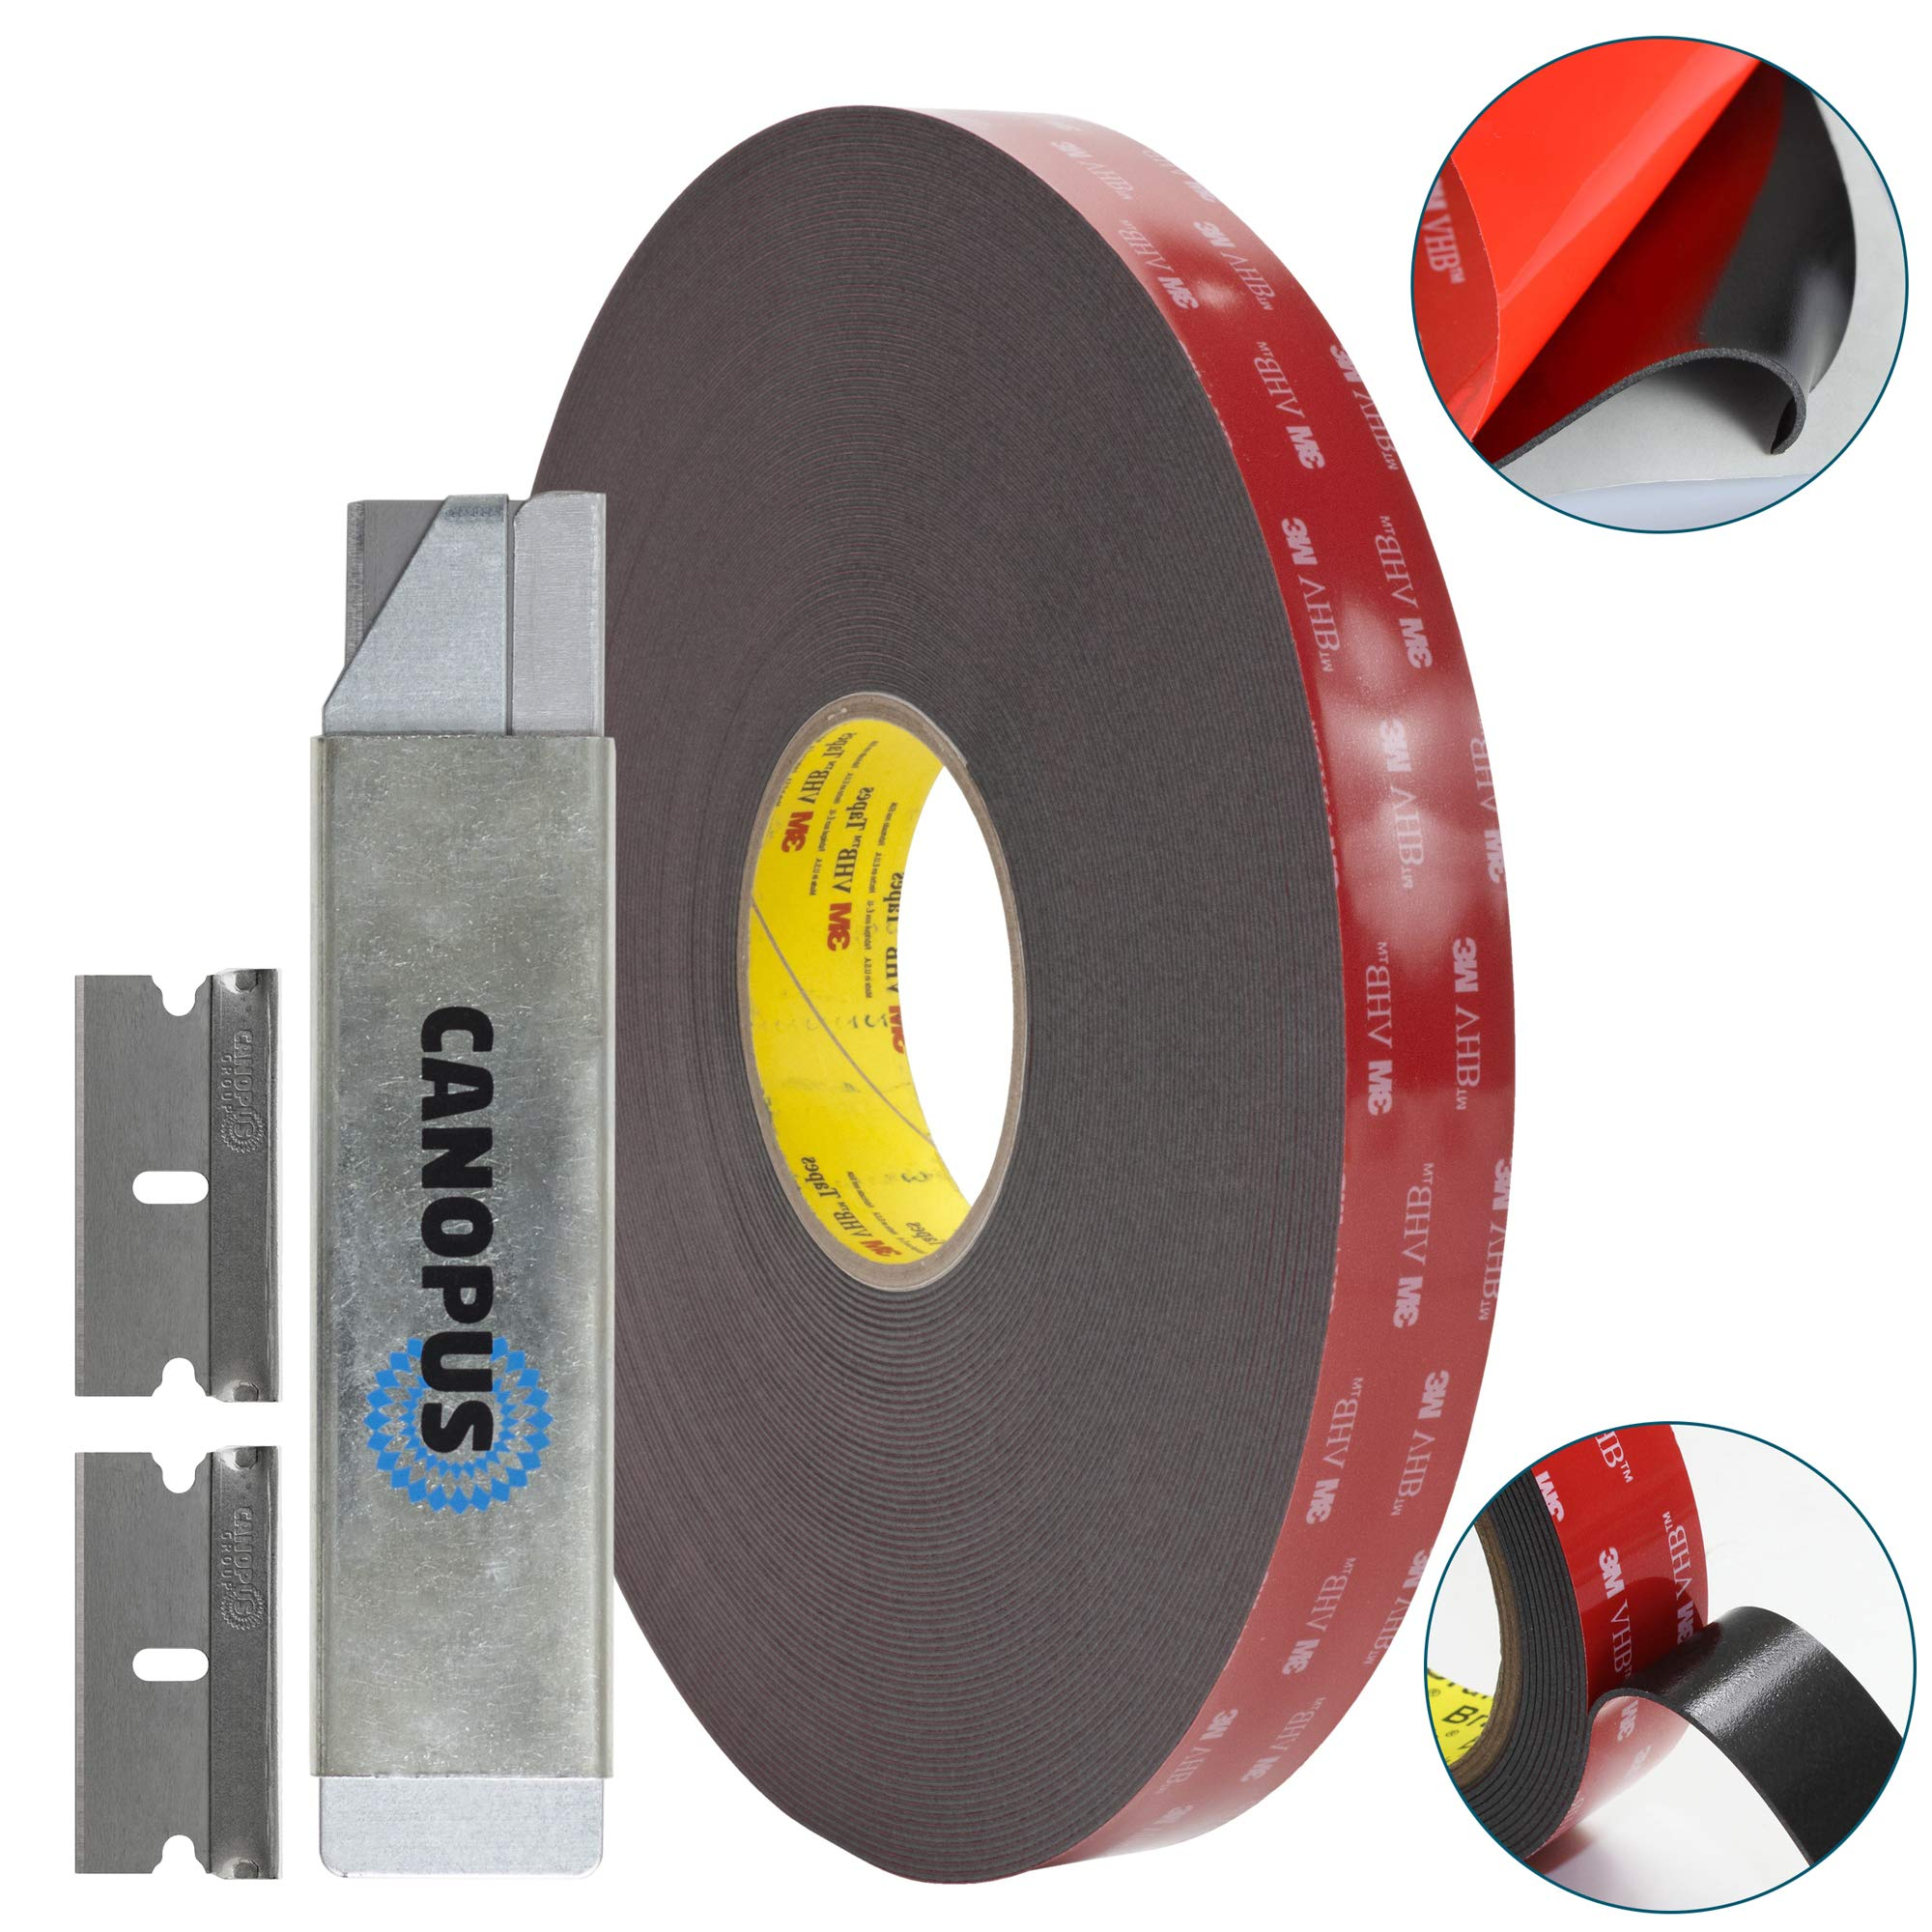 Adhesive Double Sided Tape, Heavy Duty Mounting Tape, Converted from 3M VHB 5952 roll, (0,75 in x 15 ft) with Box Cutter (1PC) and Razor Replacement (2PCs)